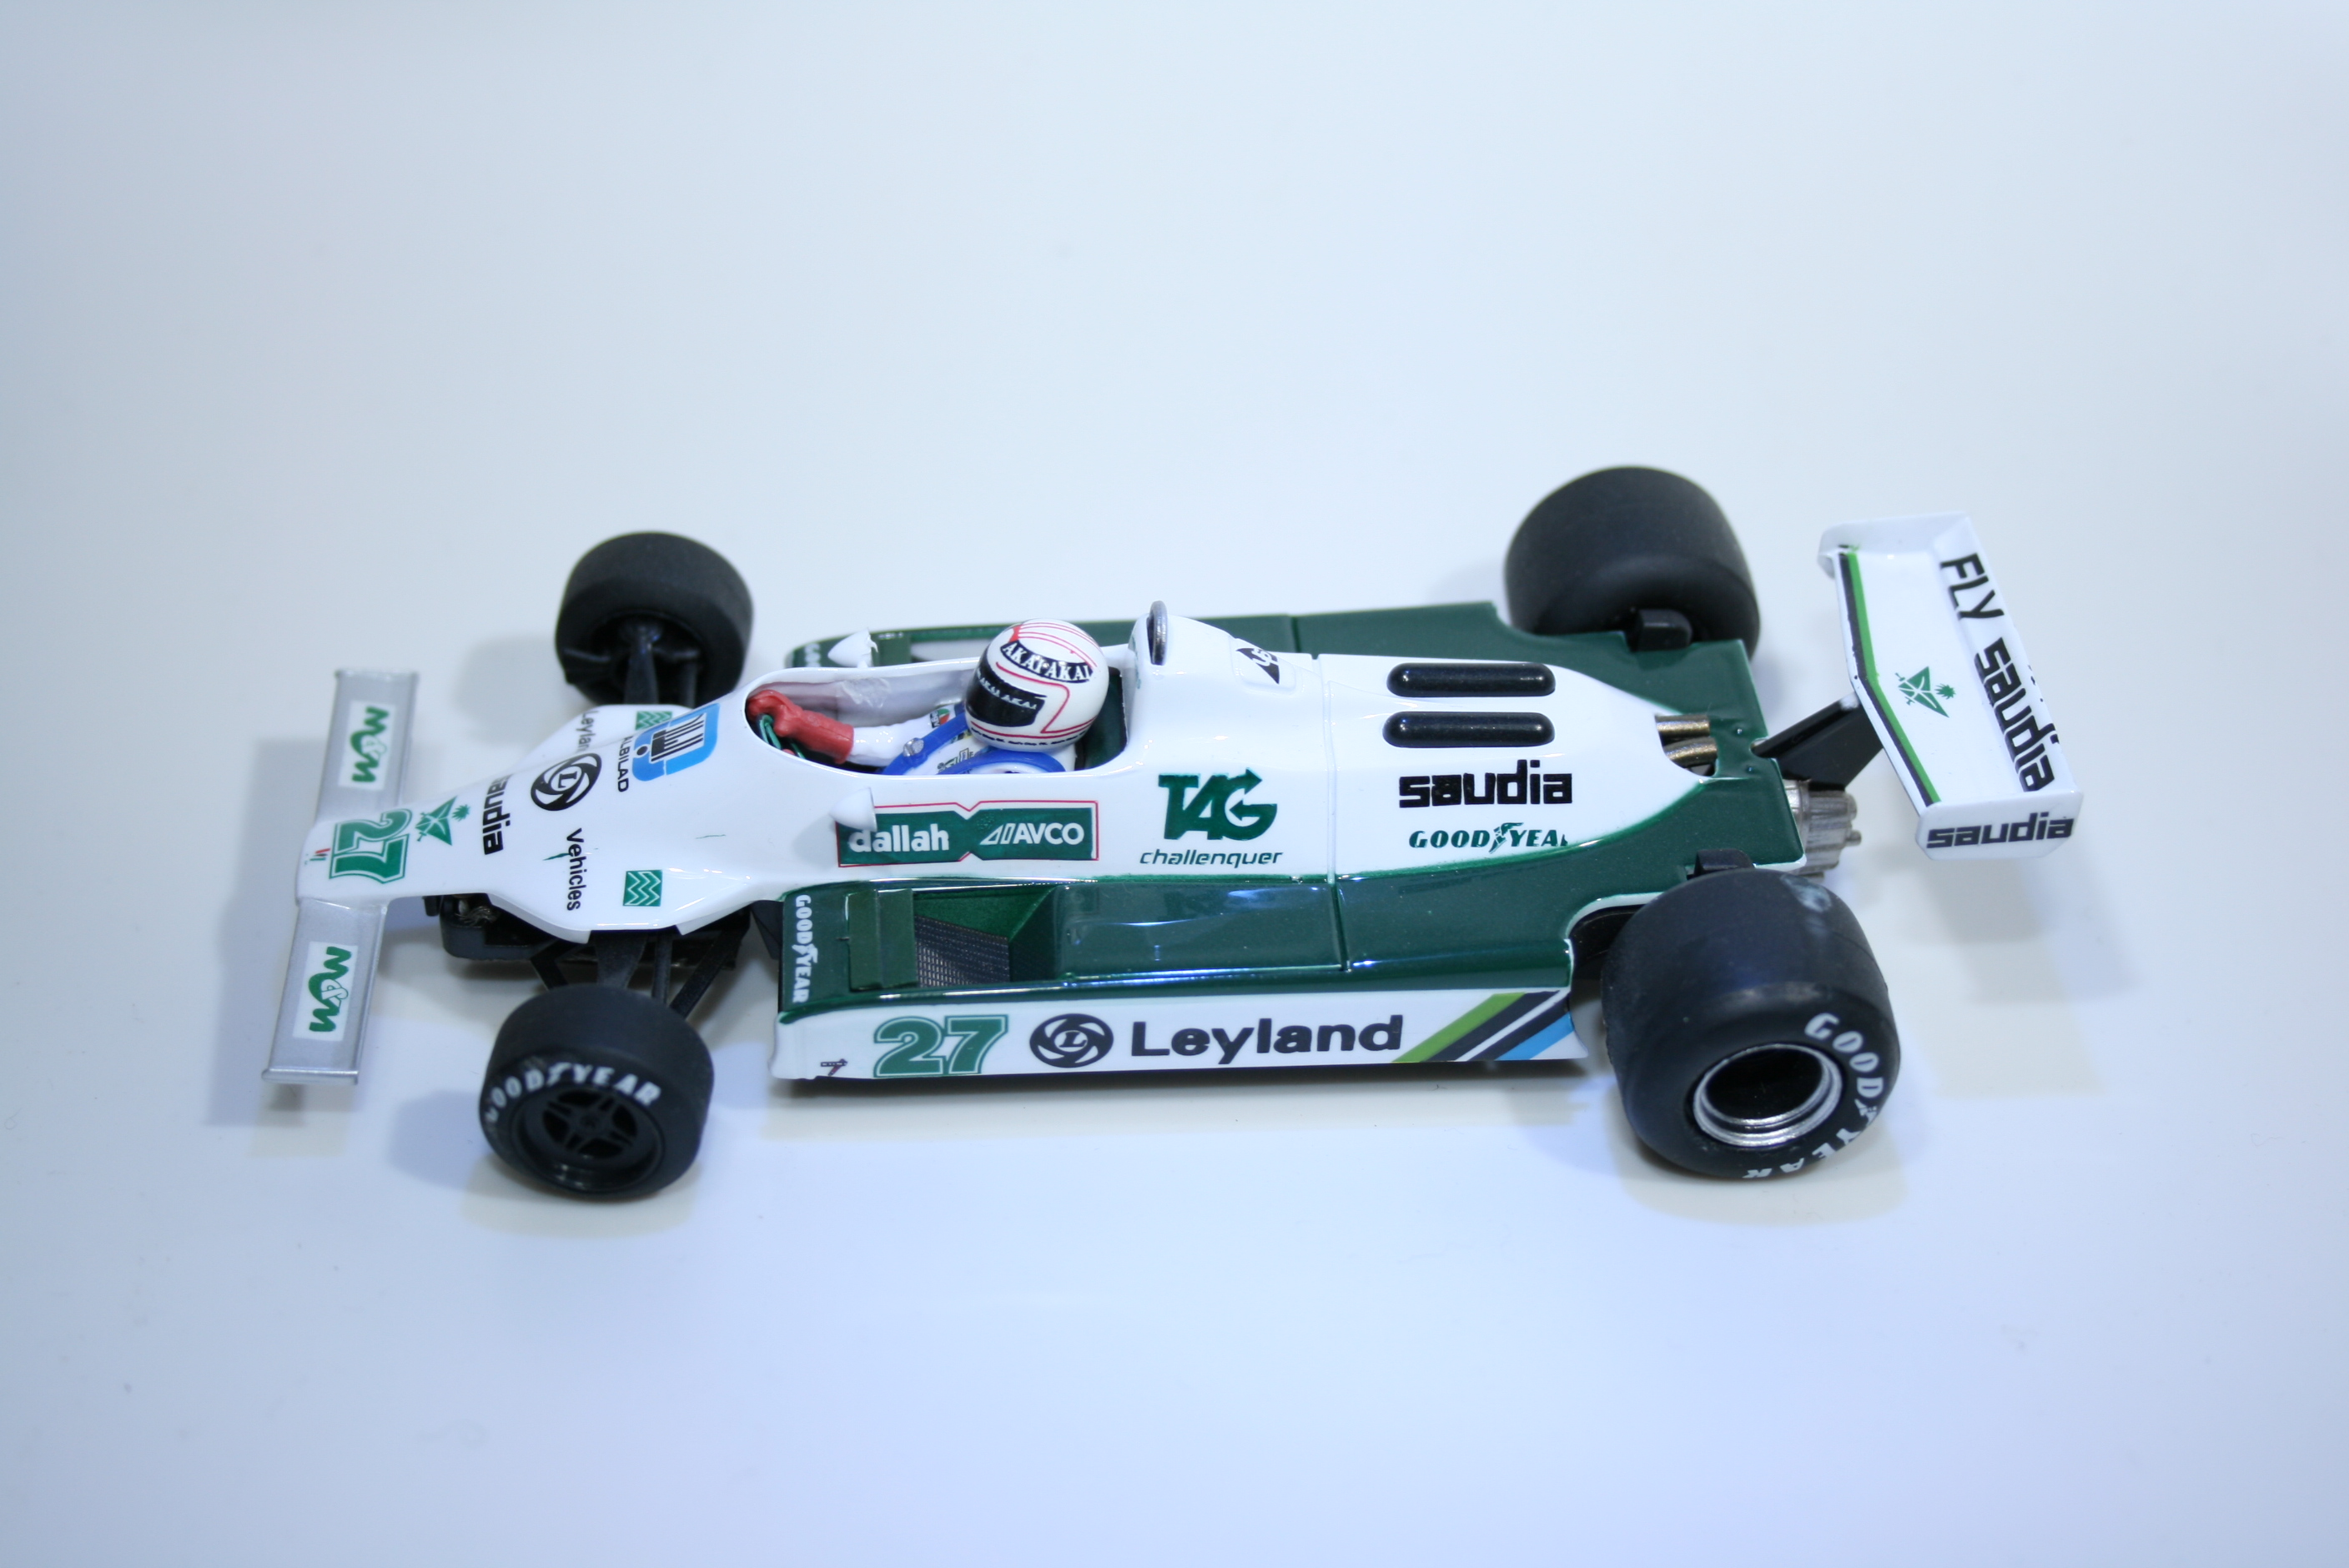 651 Williams FW07B 1980 A Jones Fly 055107 2011 Boxed